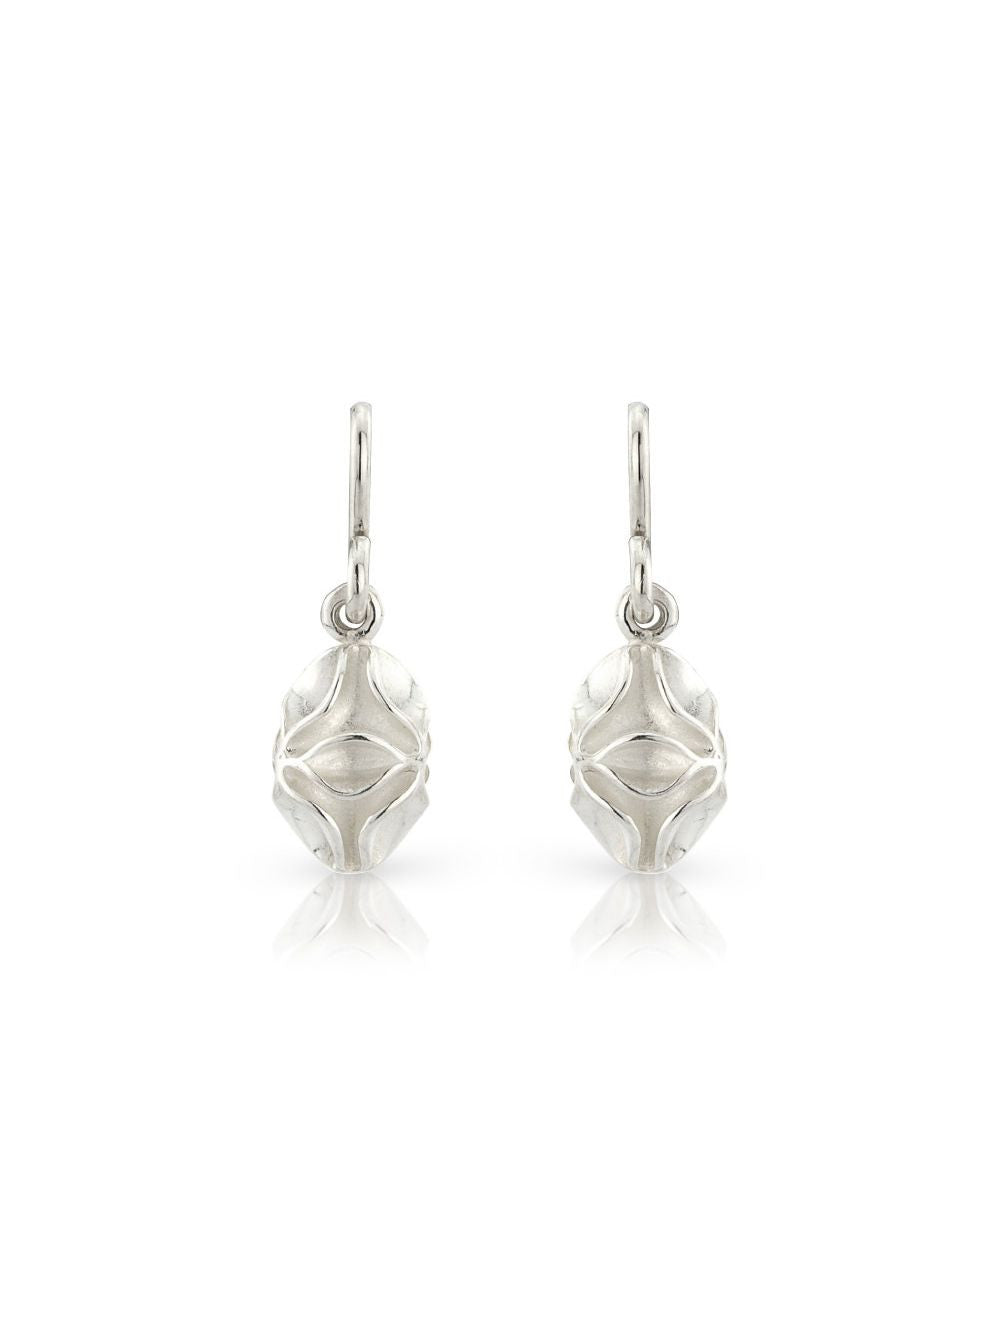 925 Silver Earrings - Classic Jewellery for Her | SOJ